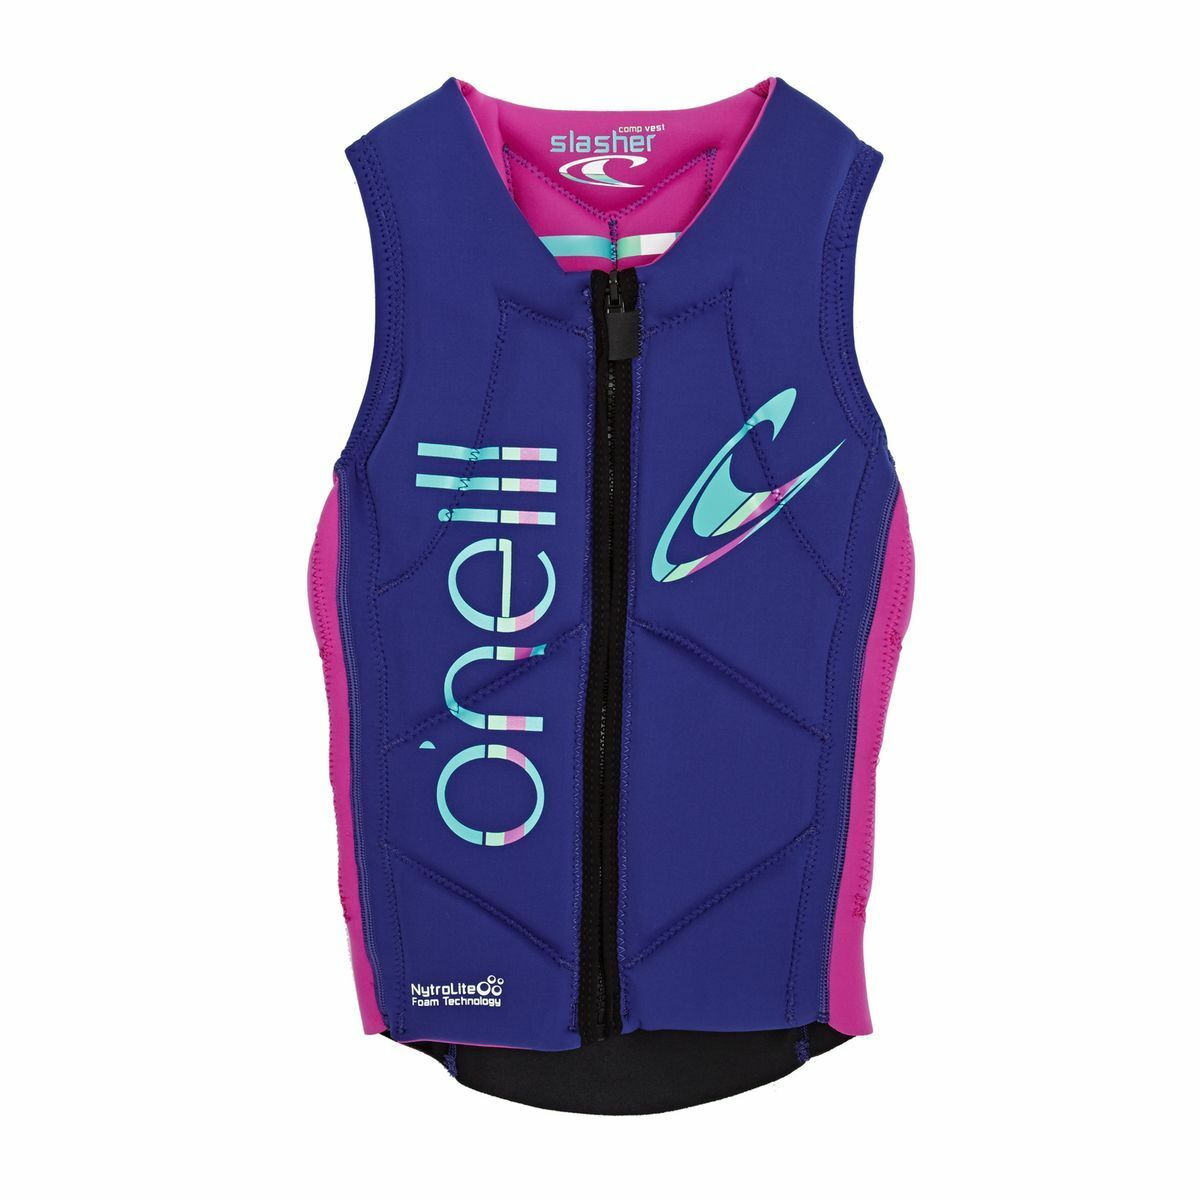 2015 Women's Slasher Comp Vest size 4